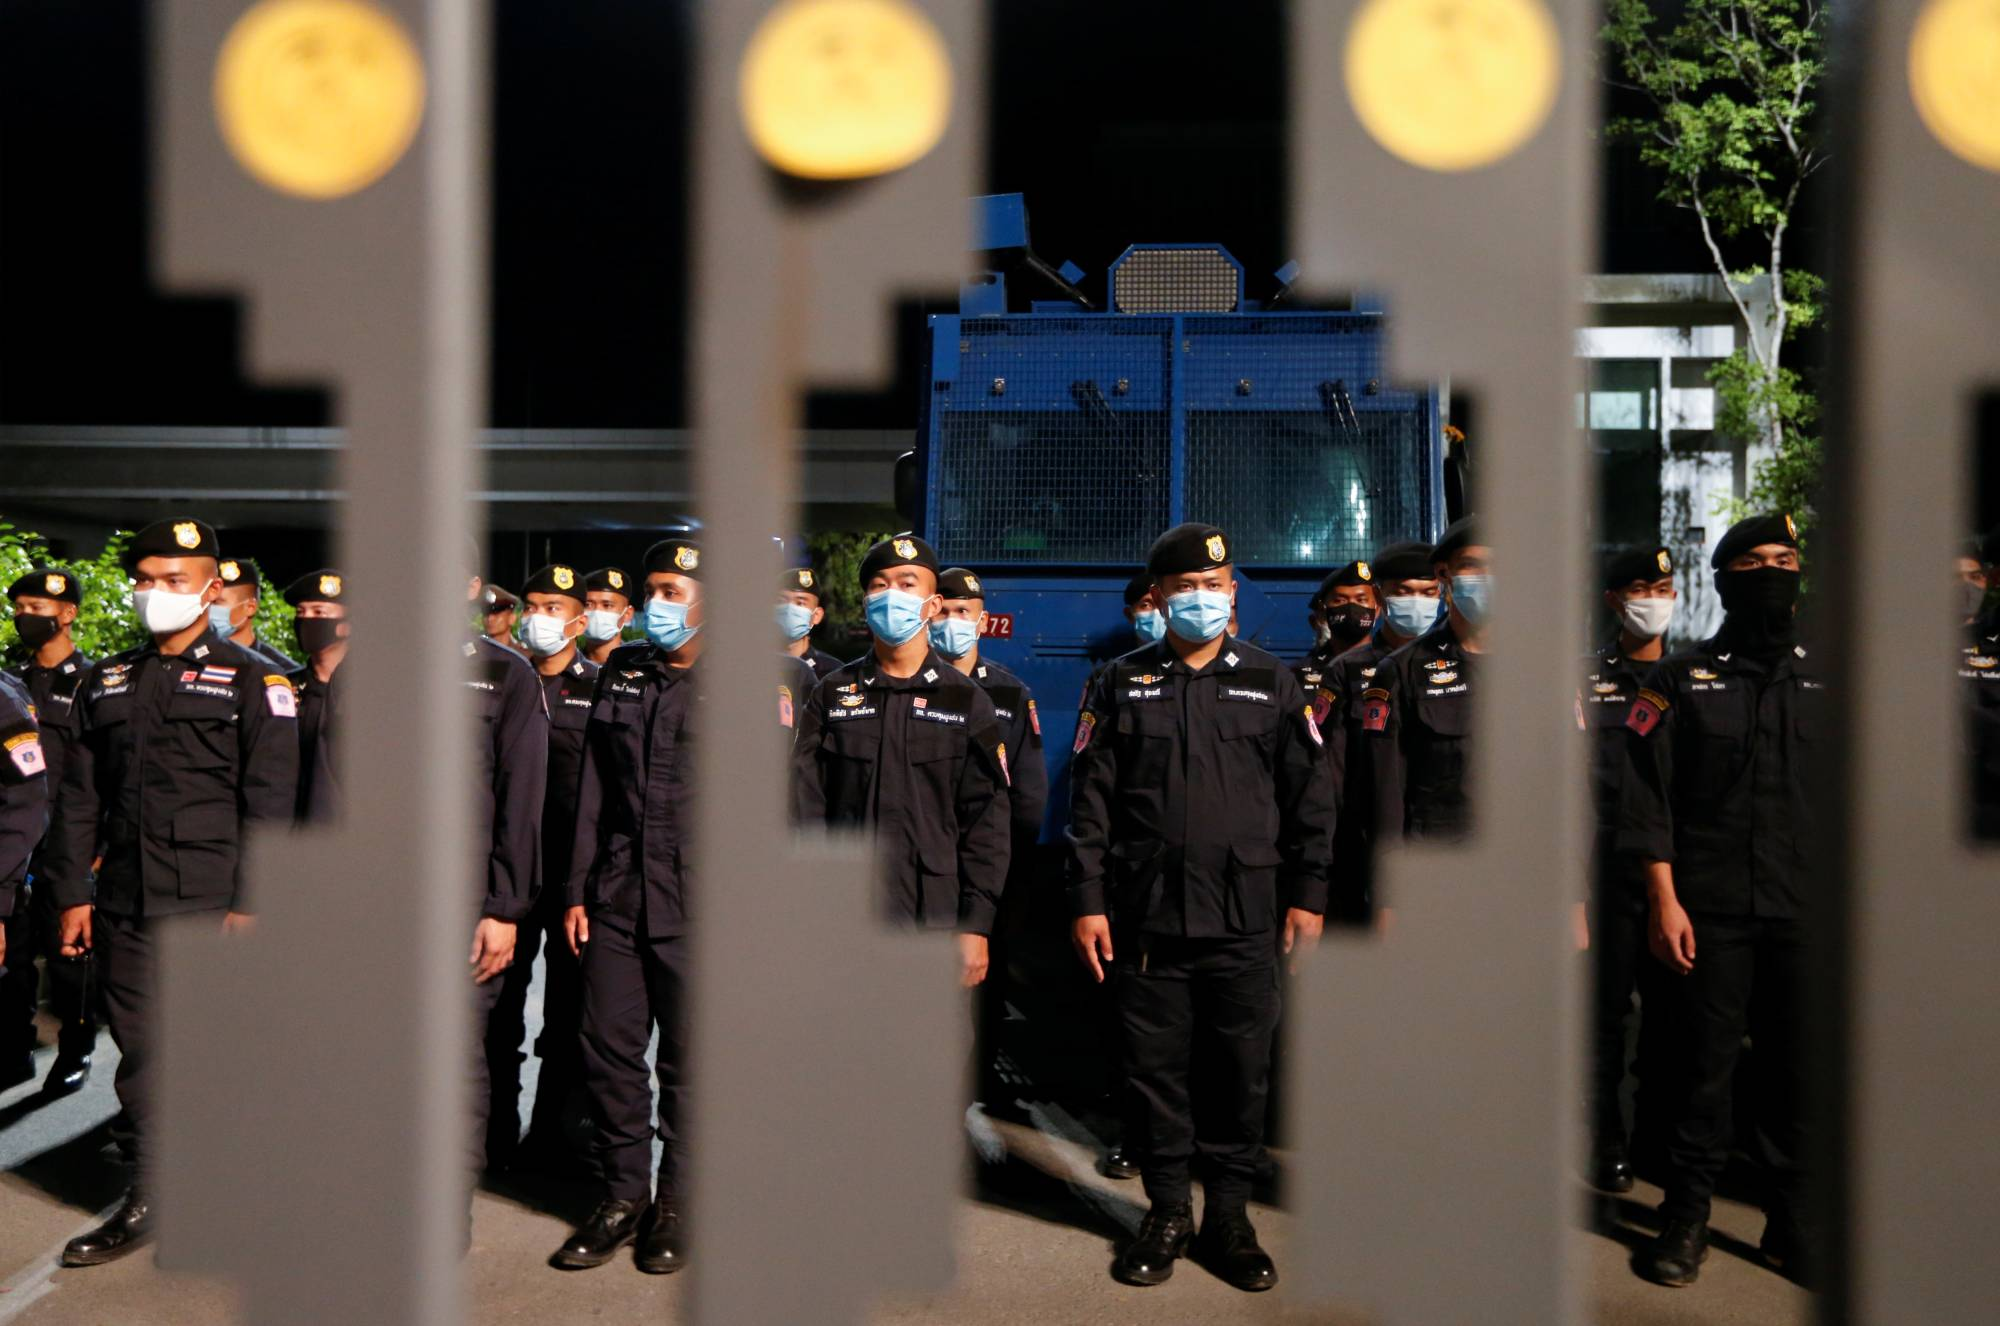 Security officers stand guard as pro-democracy protesters attend a mass rally to call for the ouster of Prime Minister Prayut Chan-ocha and reforms to the monarchy in front of parliament in Bangkok on Thursday. | REUTERS